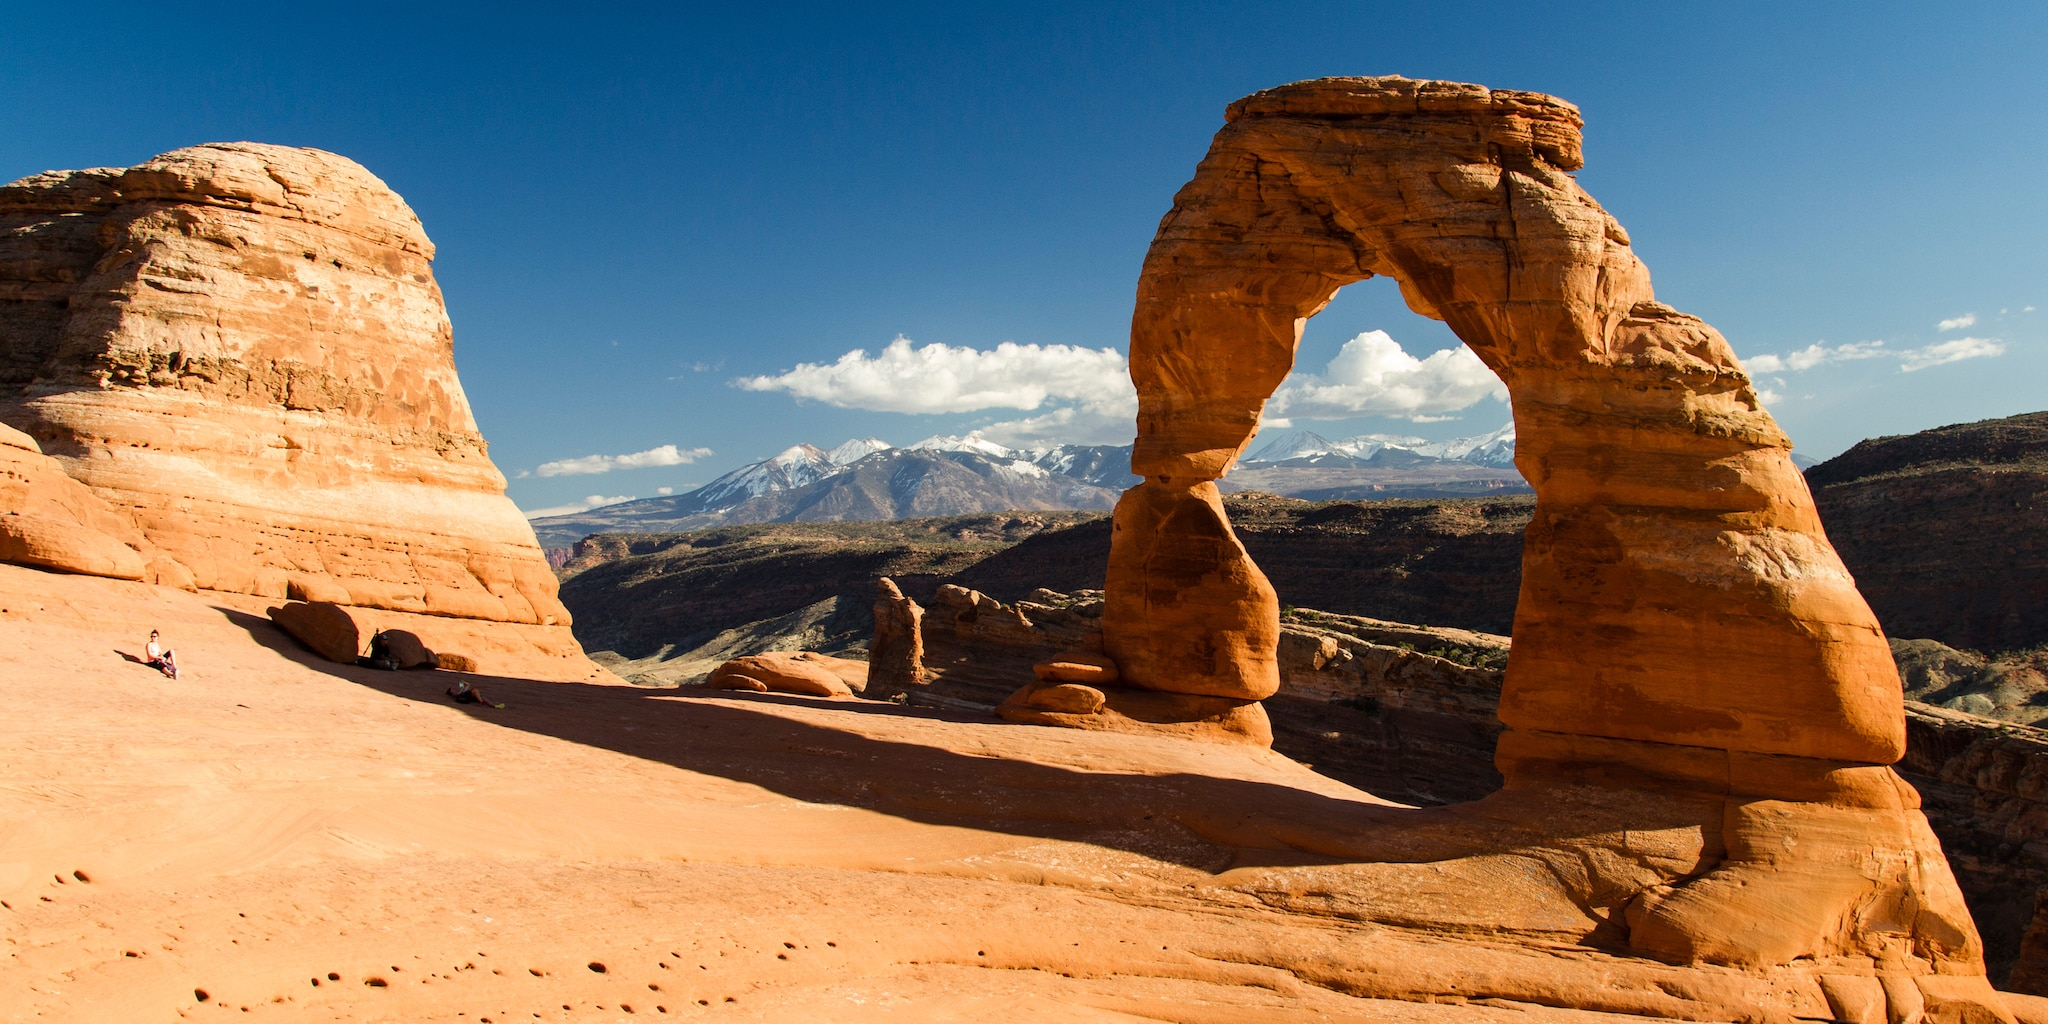 An ancient sandstone arch in Arches National Park